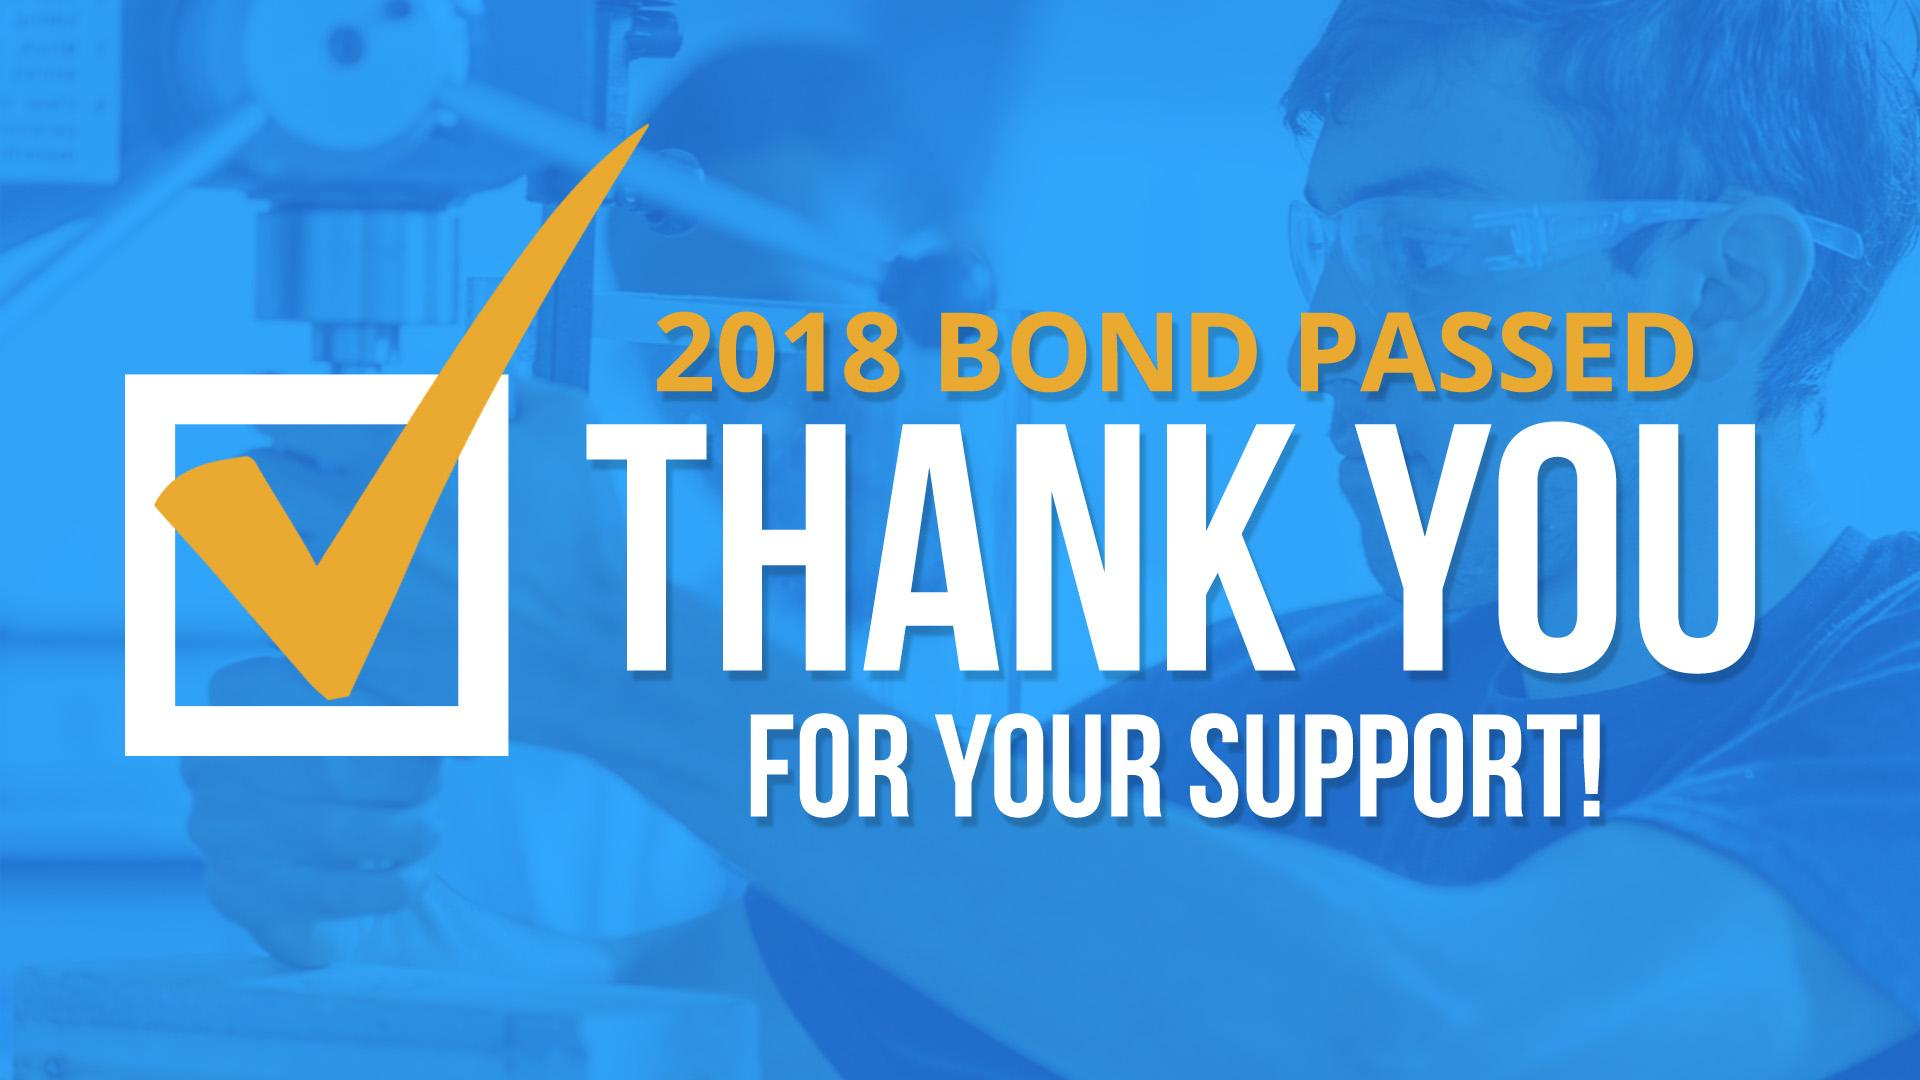 2018 Bond Referendum passed! Thank you for your support! Click Here to read about the need.2018 Bond Referendum passed! Thank you for your support! Click Here to read about the need.